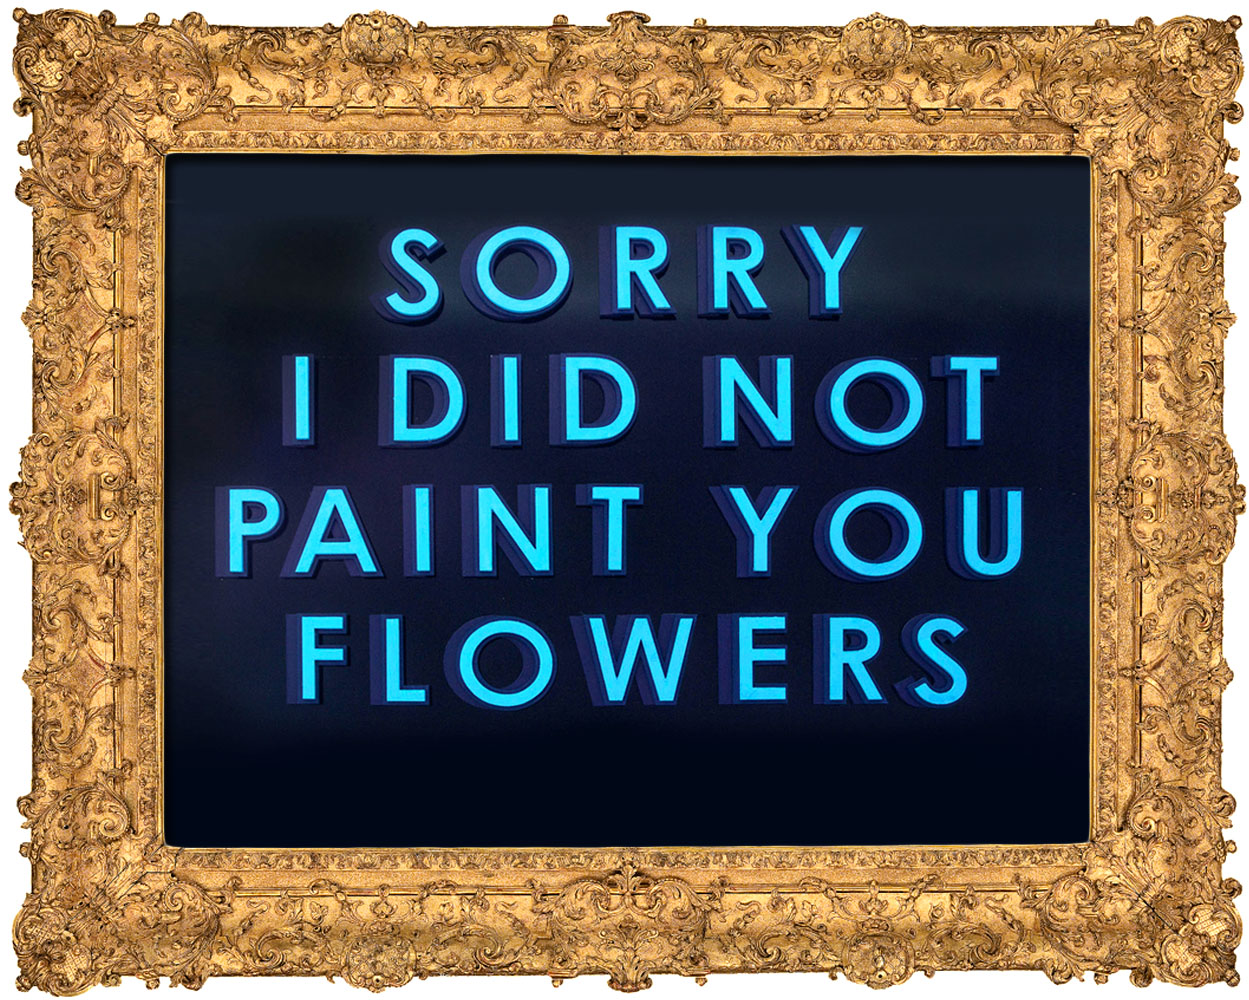 I did not paint you flowers.jpg